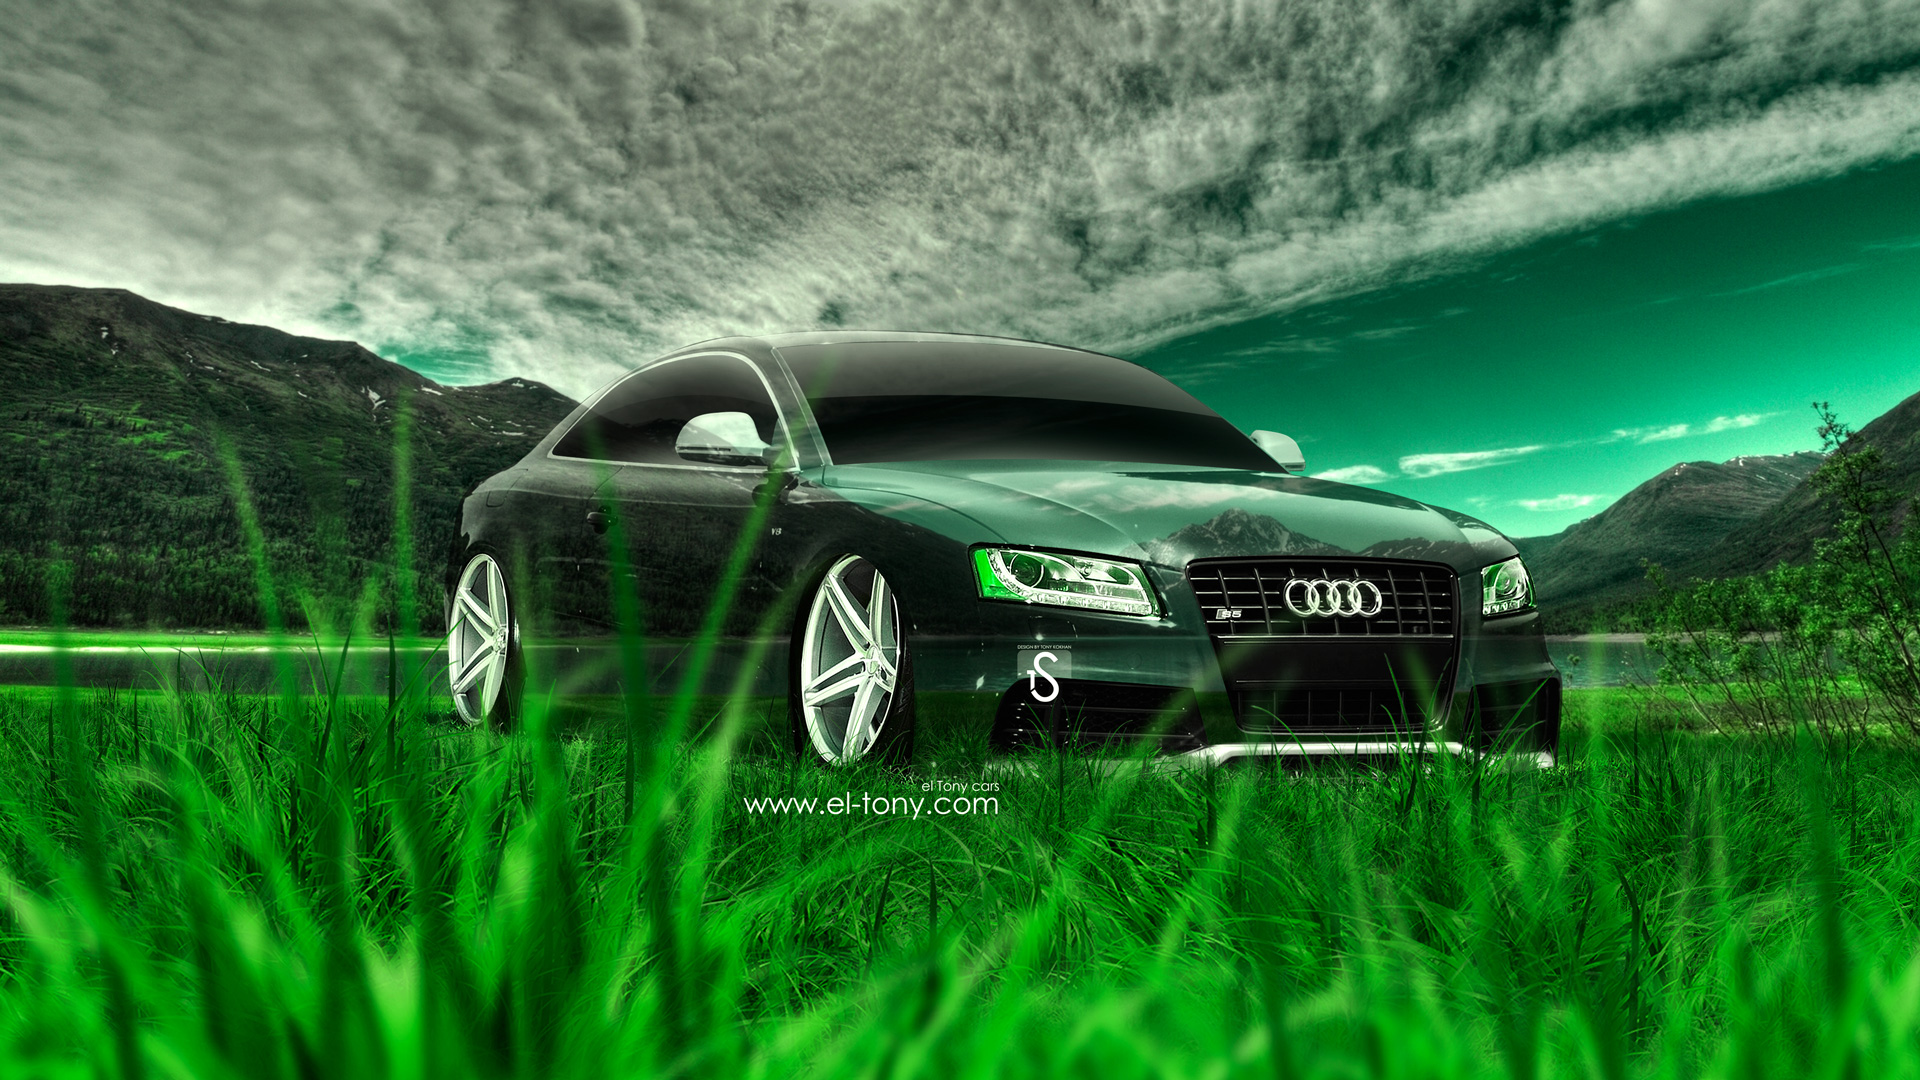 Awesome Audi S5 Crystal Nature Car 2014